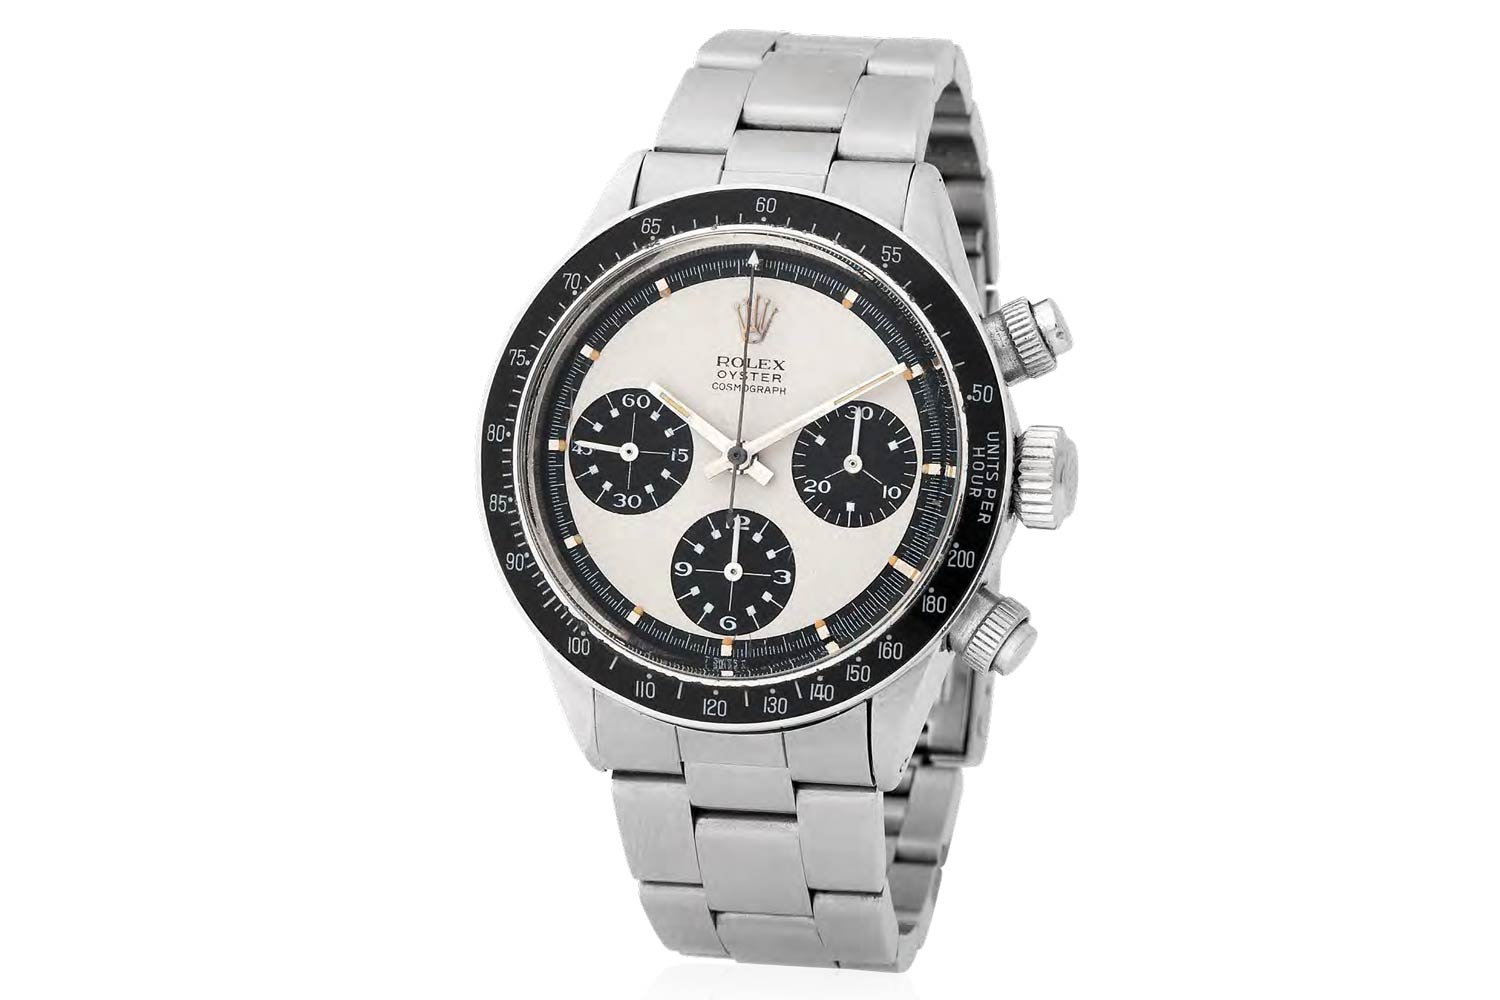 """Lot 276 Rolex: Fresh to the market, coming from the original owner family, absolutely mint Daytona Paul Newman """"Panda"""" Mark I Chronograph wristwatch in steel, reference 6263"""